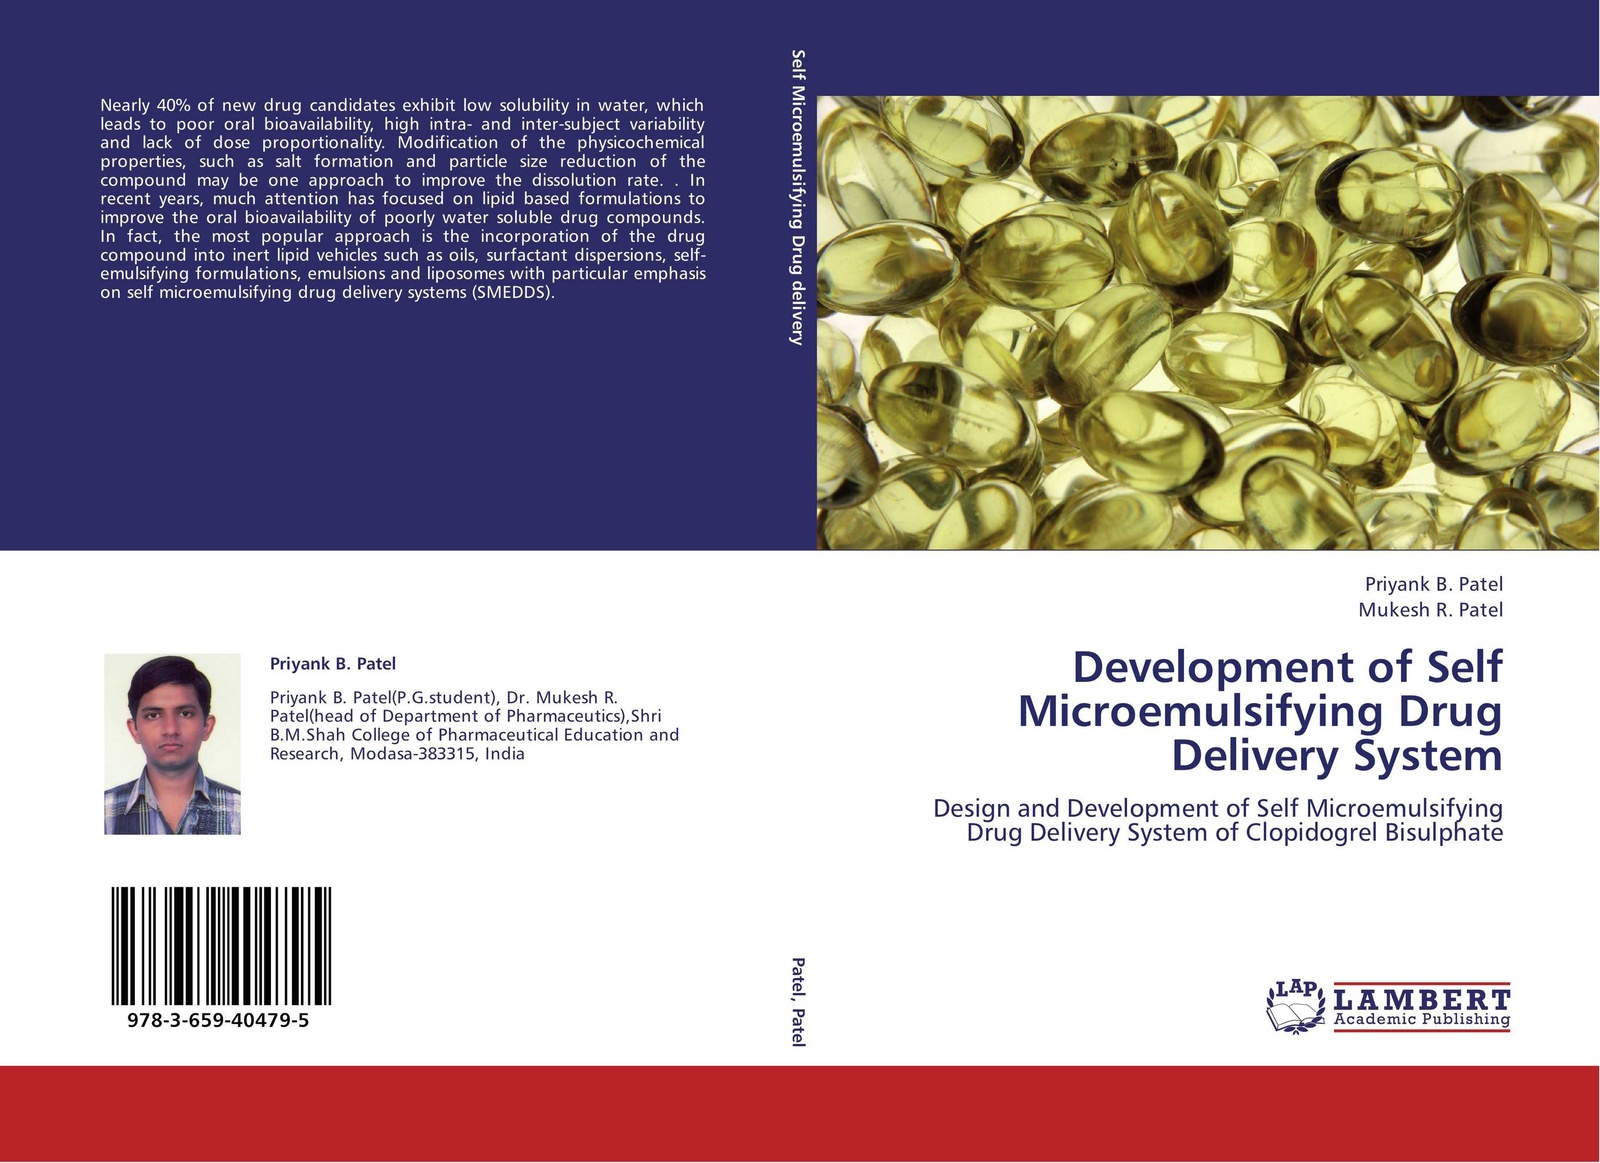 Priyank B. Patel and Mukesh R. Patel Development of Self Microemulsifying Drug Delivery System mike lee s oral bioavailability assessment basics and strategies for drug discovery and development